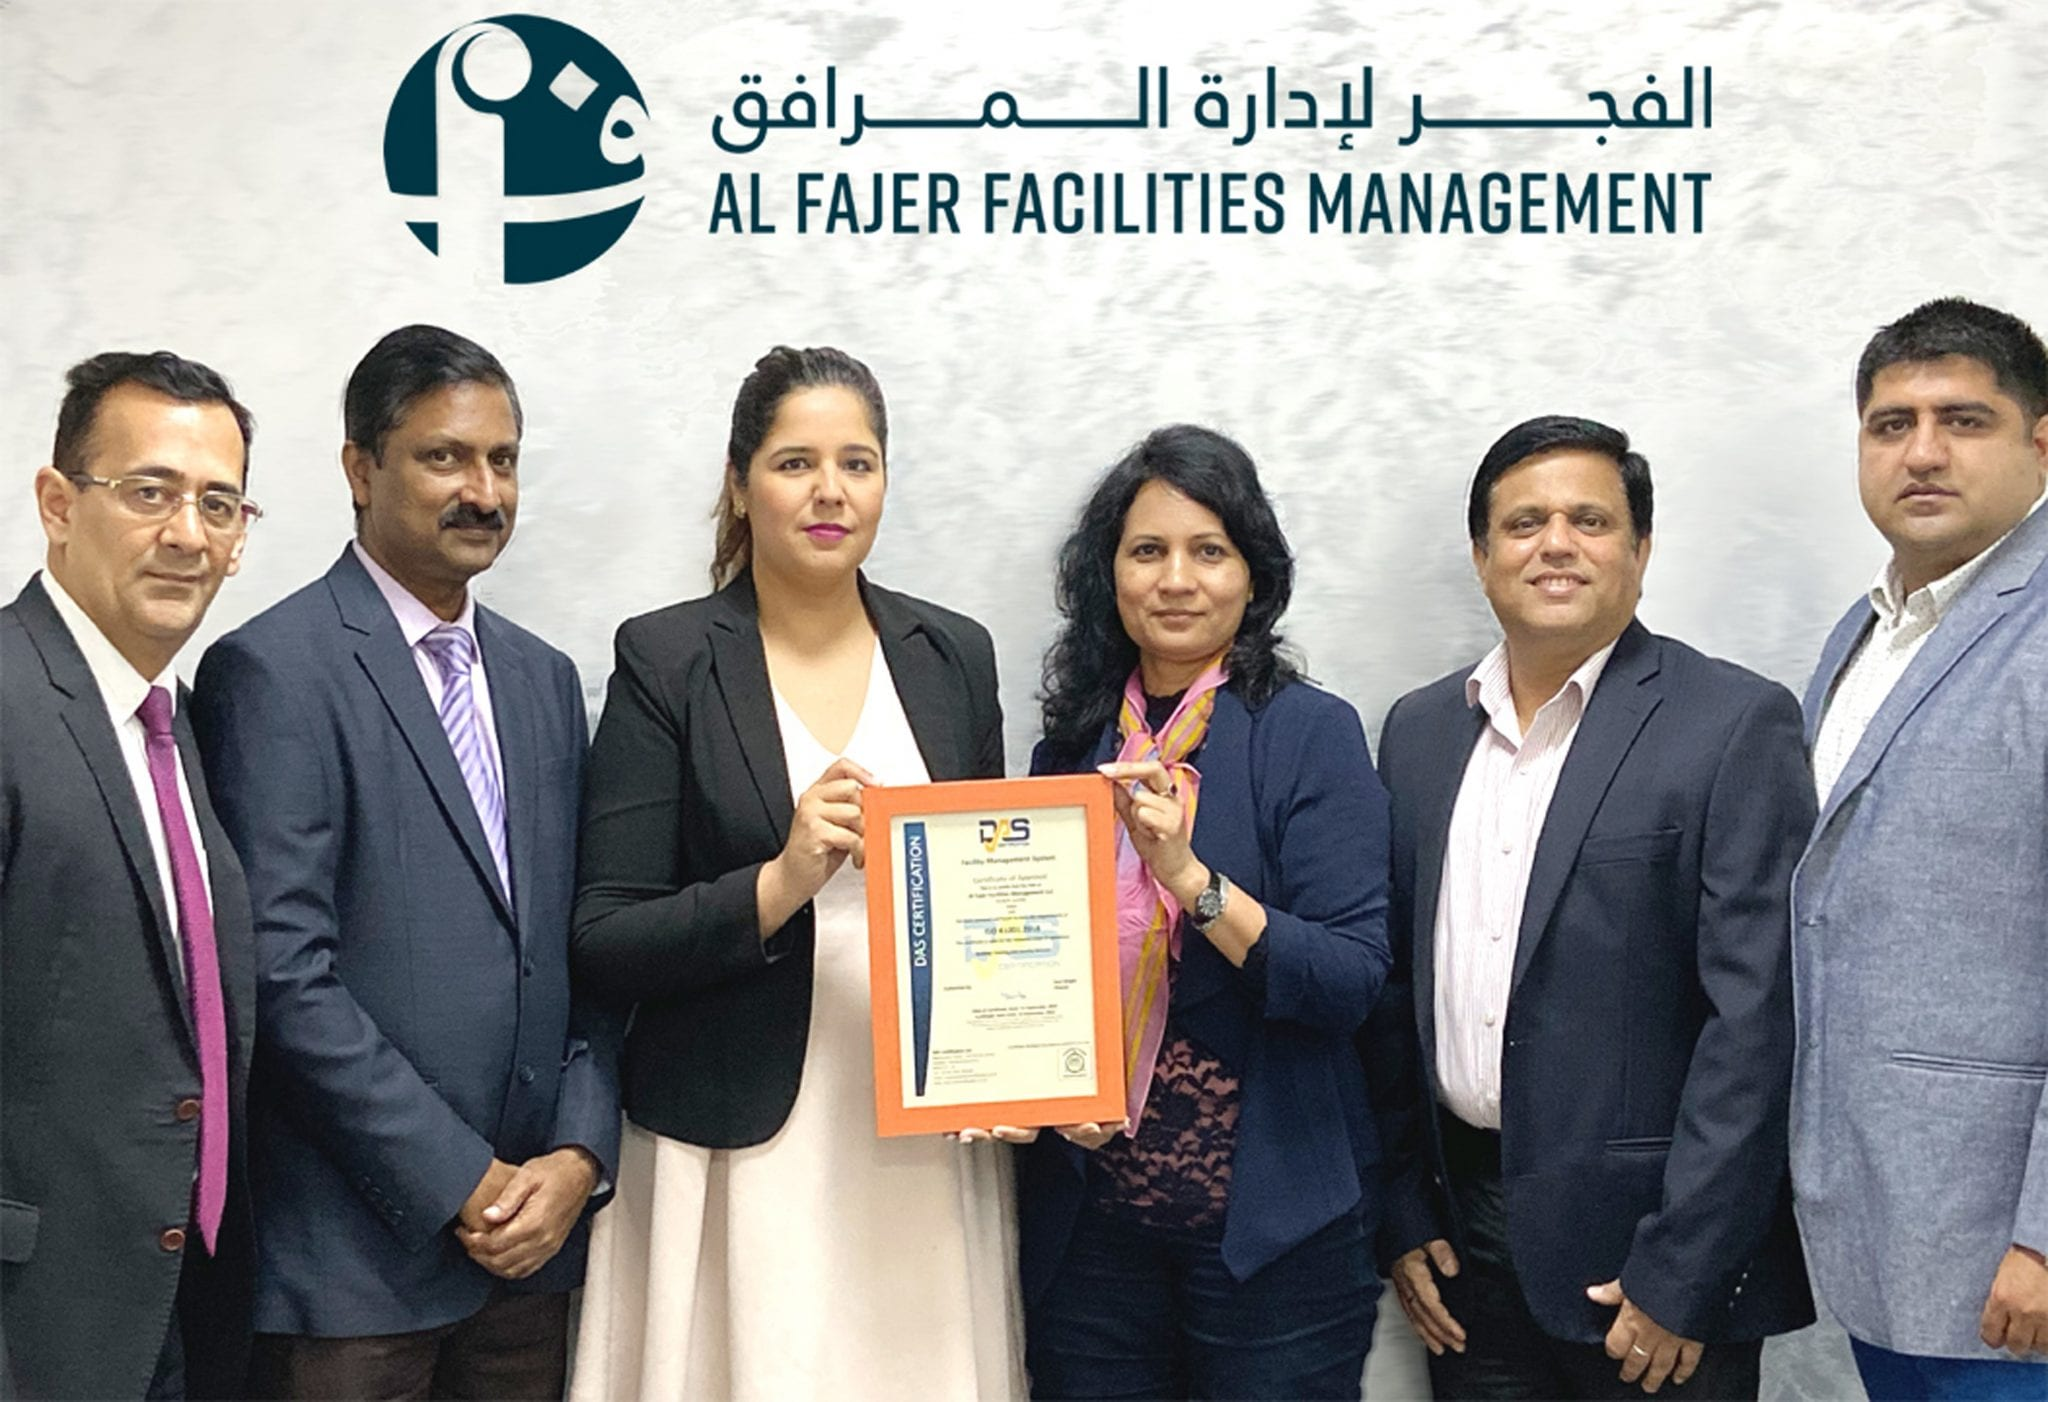 Al fajer Management team